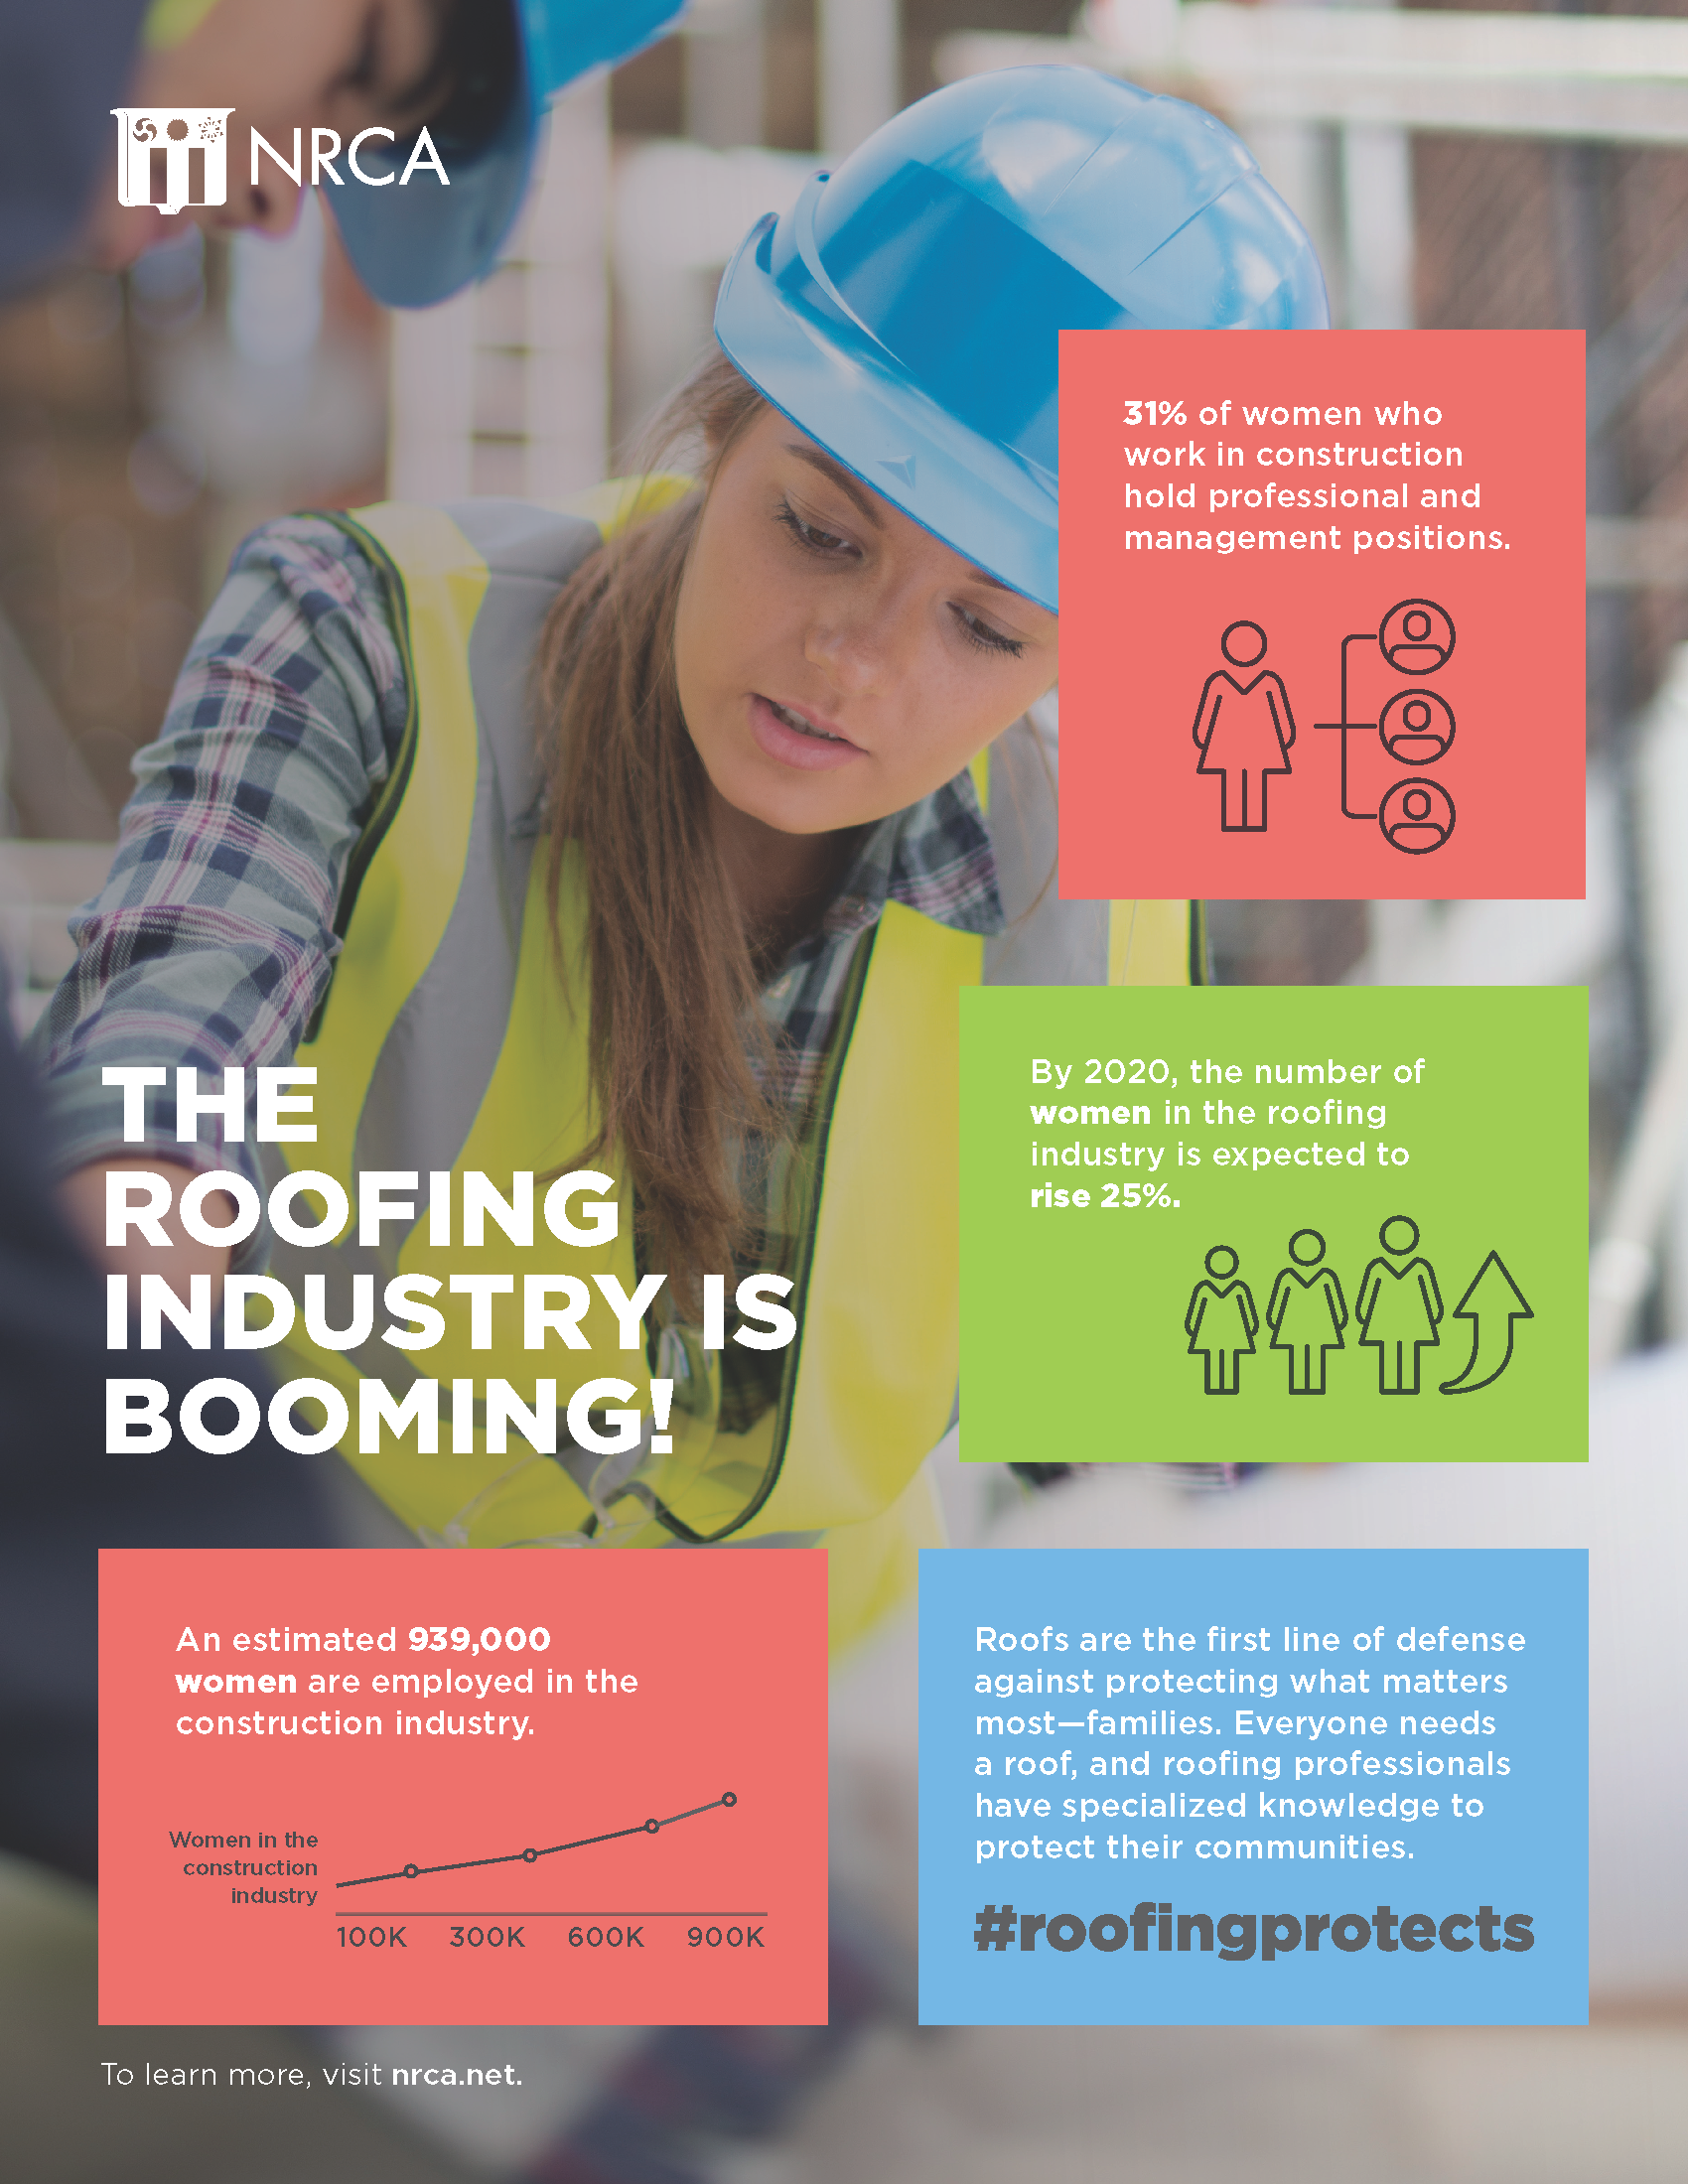 The Roofing Industry is Booming! (Women)